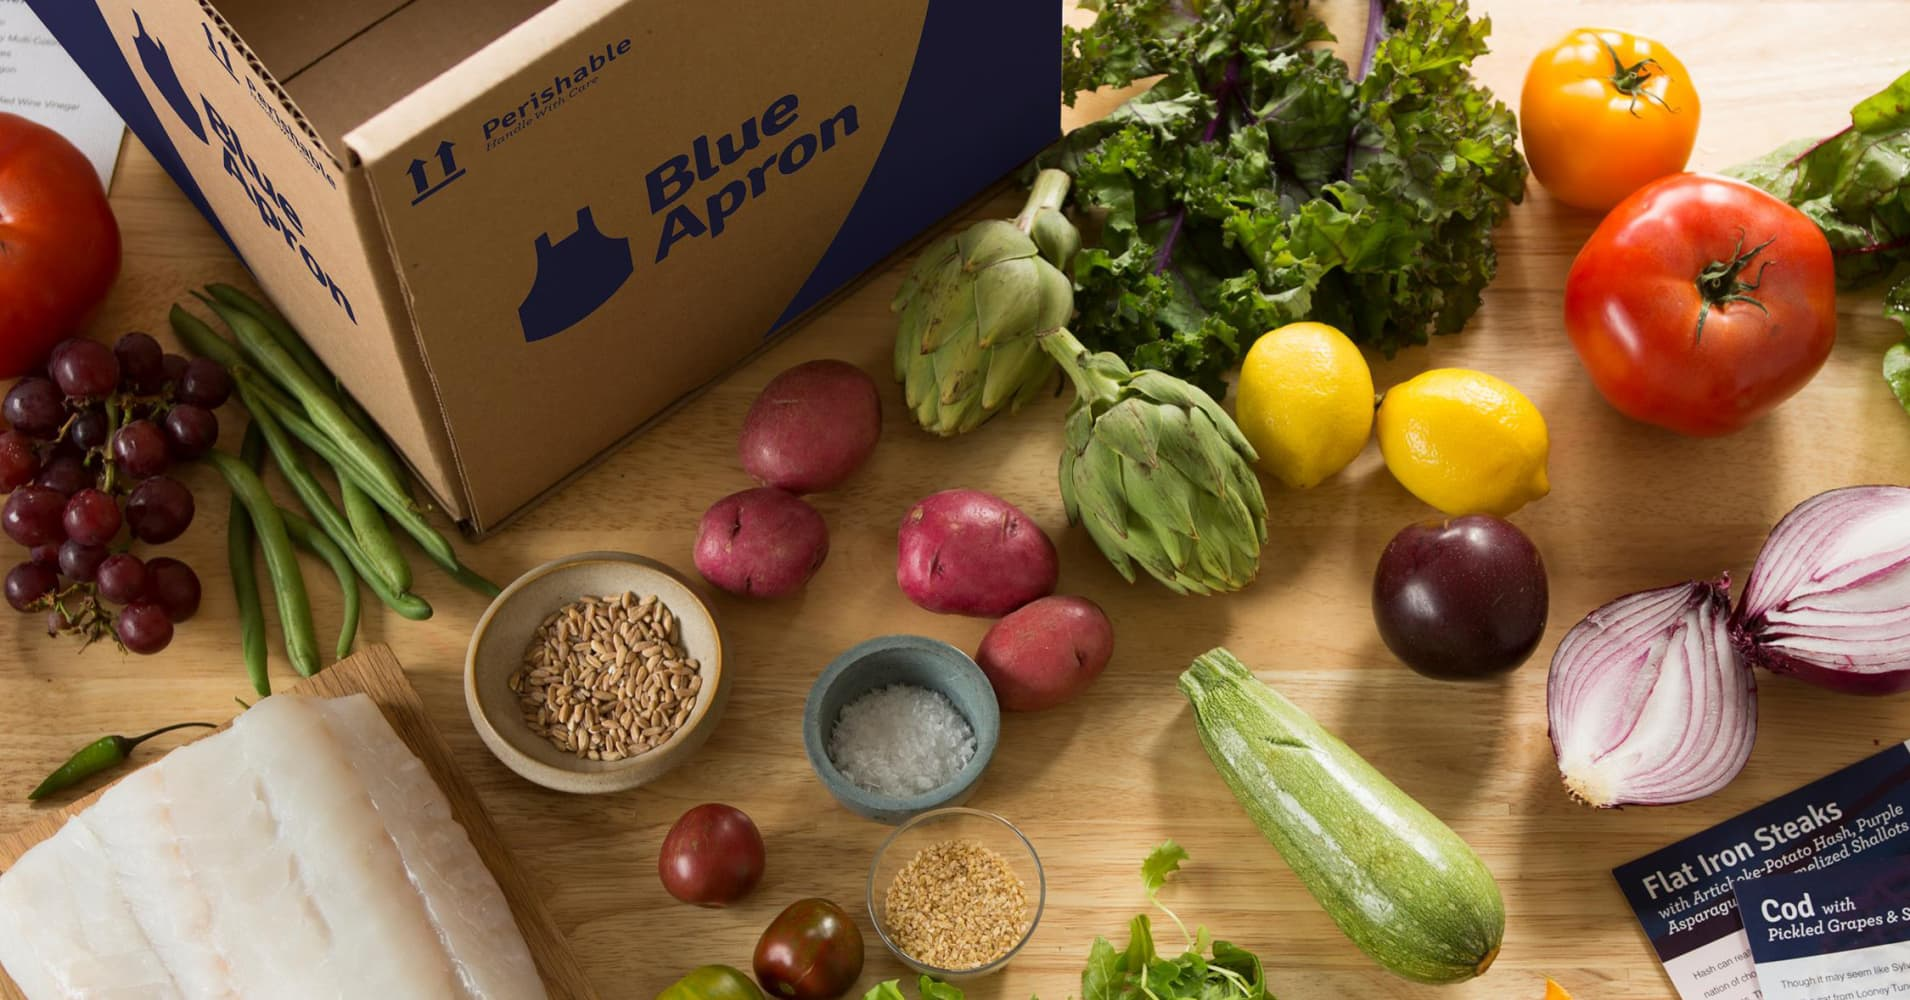 Blue apron number